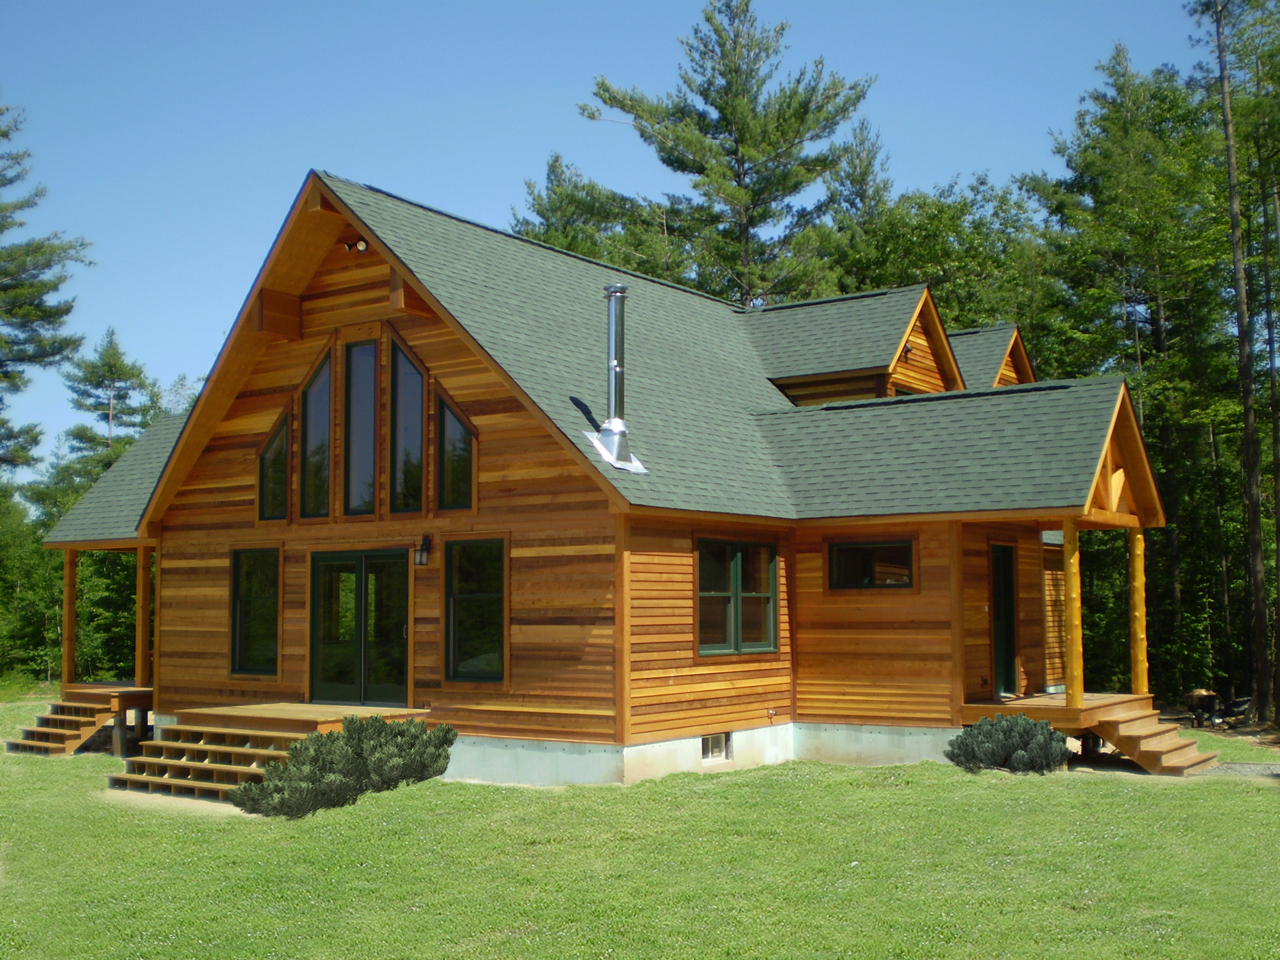 Affordable, Energy Efficient Custom Modular Homes